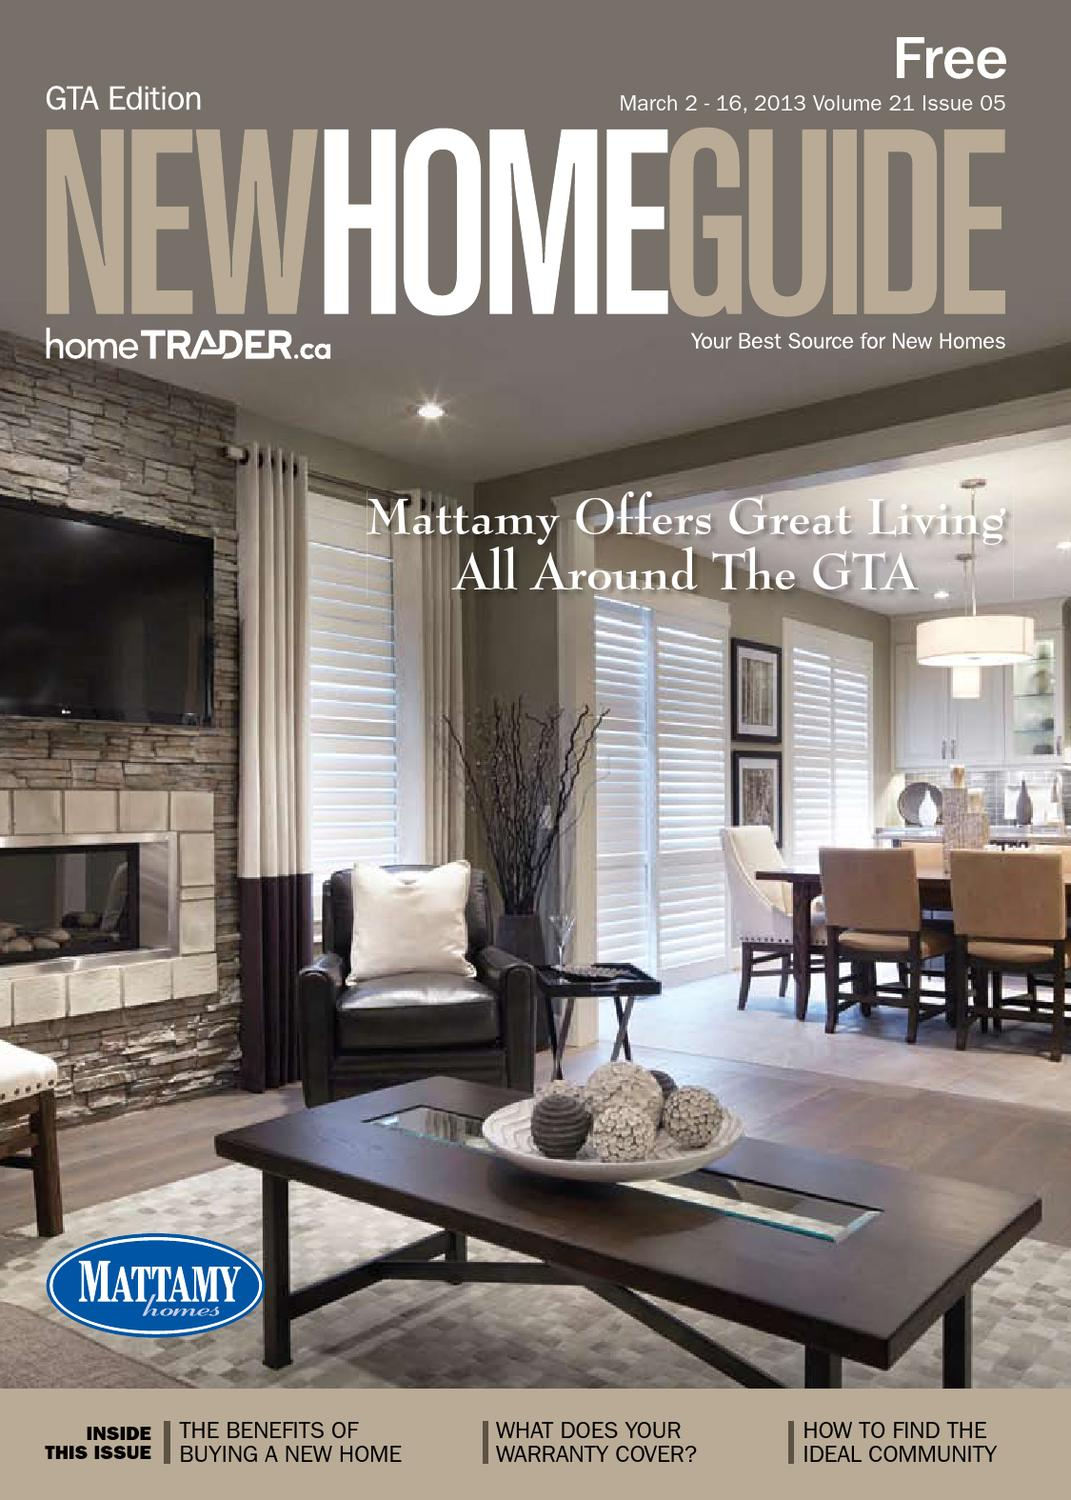 Gta New Home Guide March 2 2013 By Nexthome Issuu